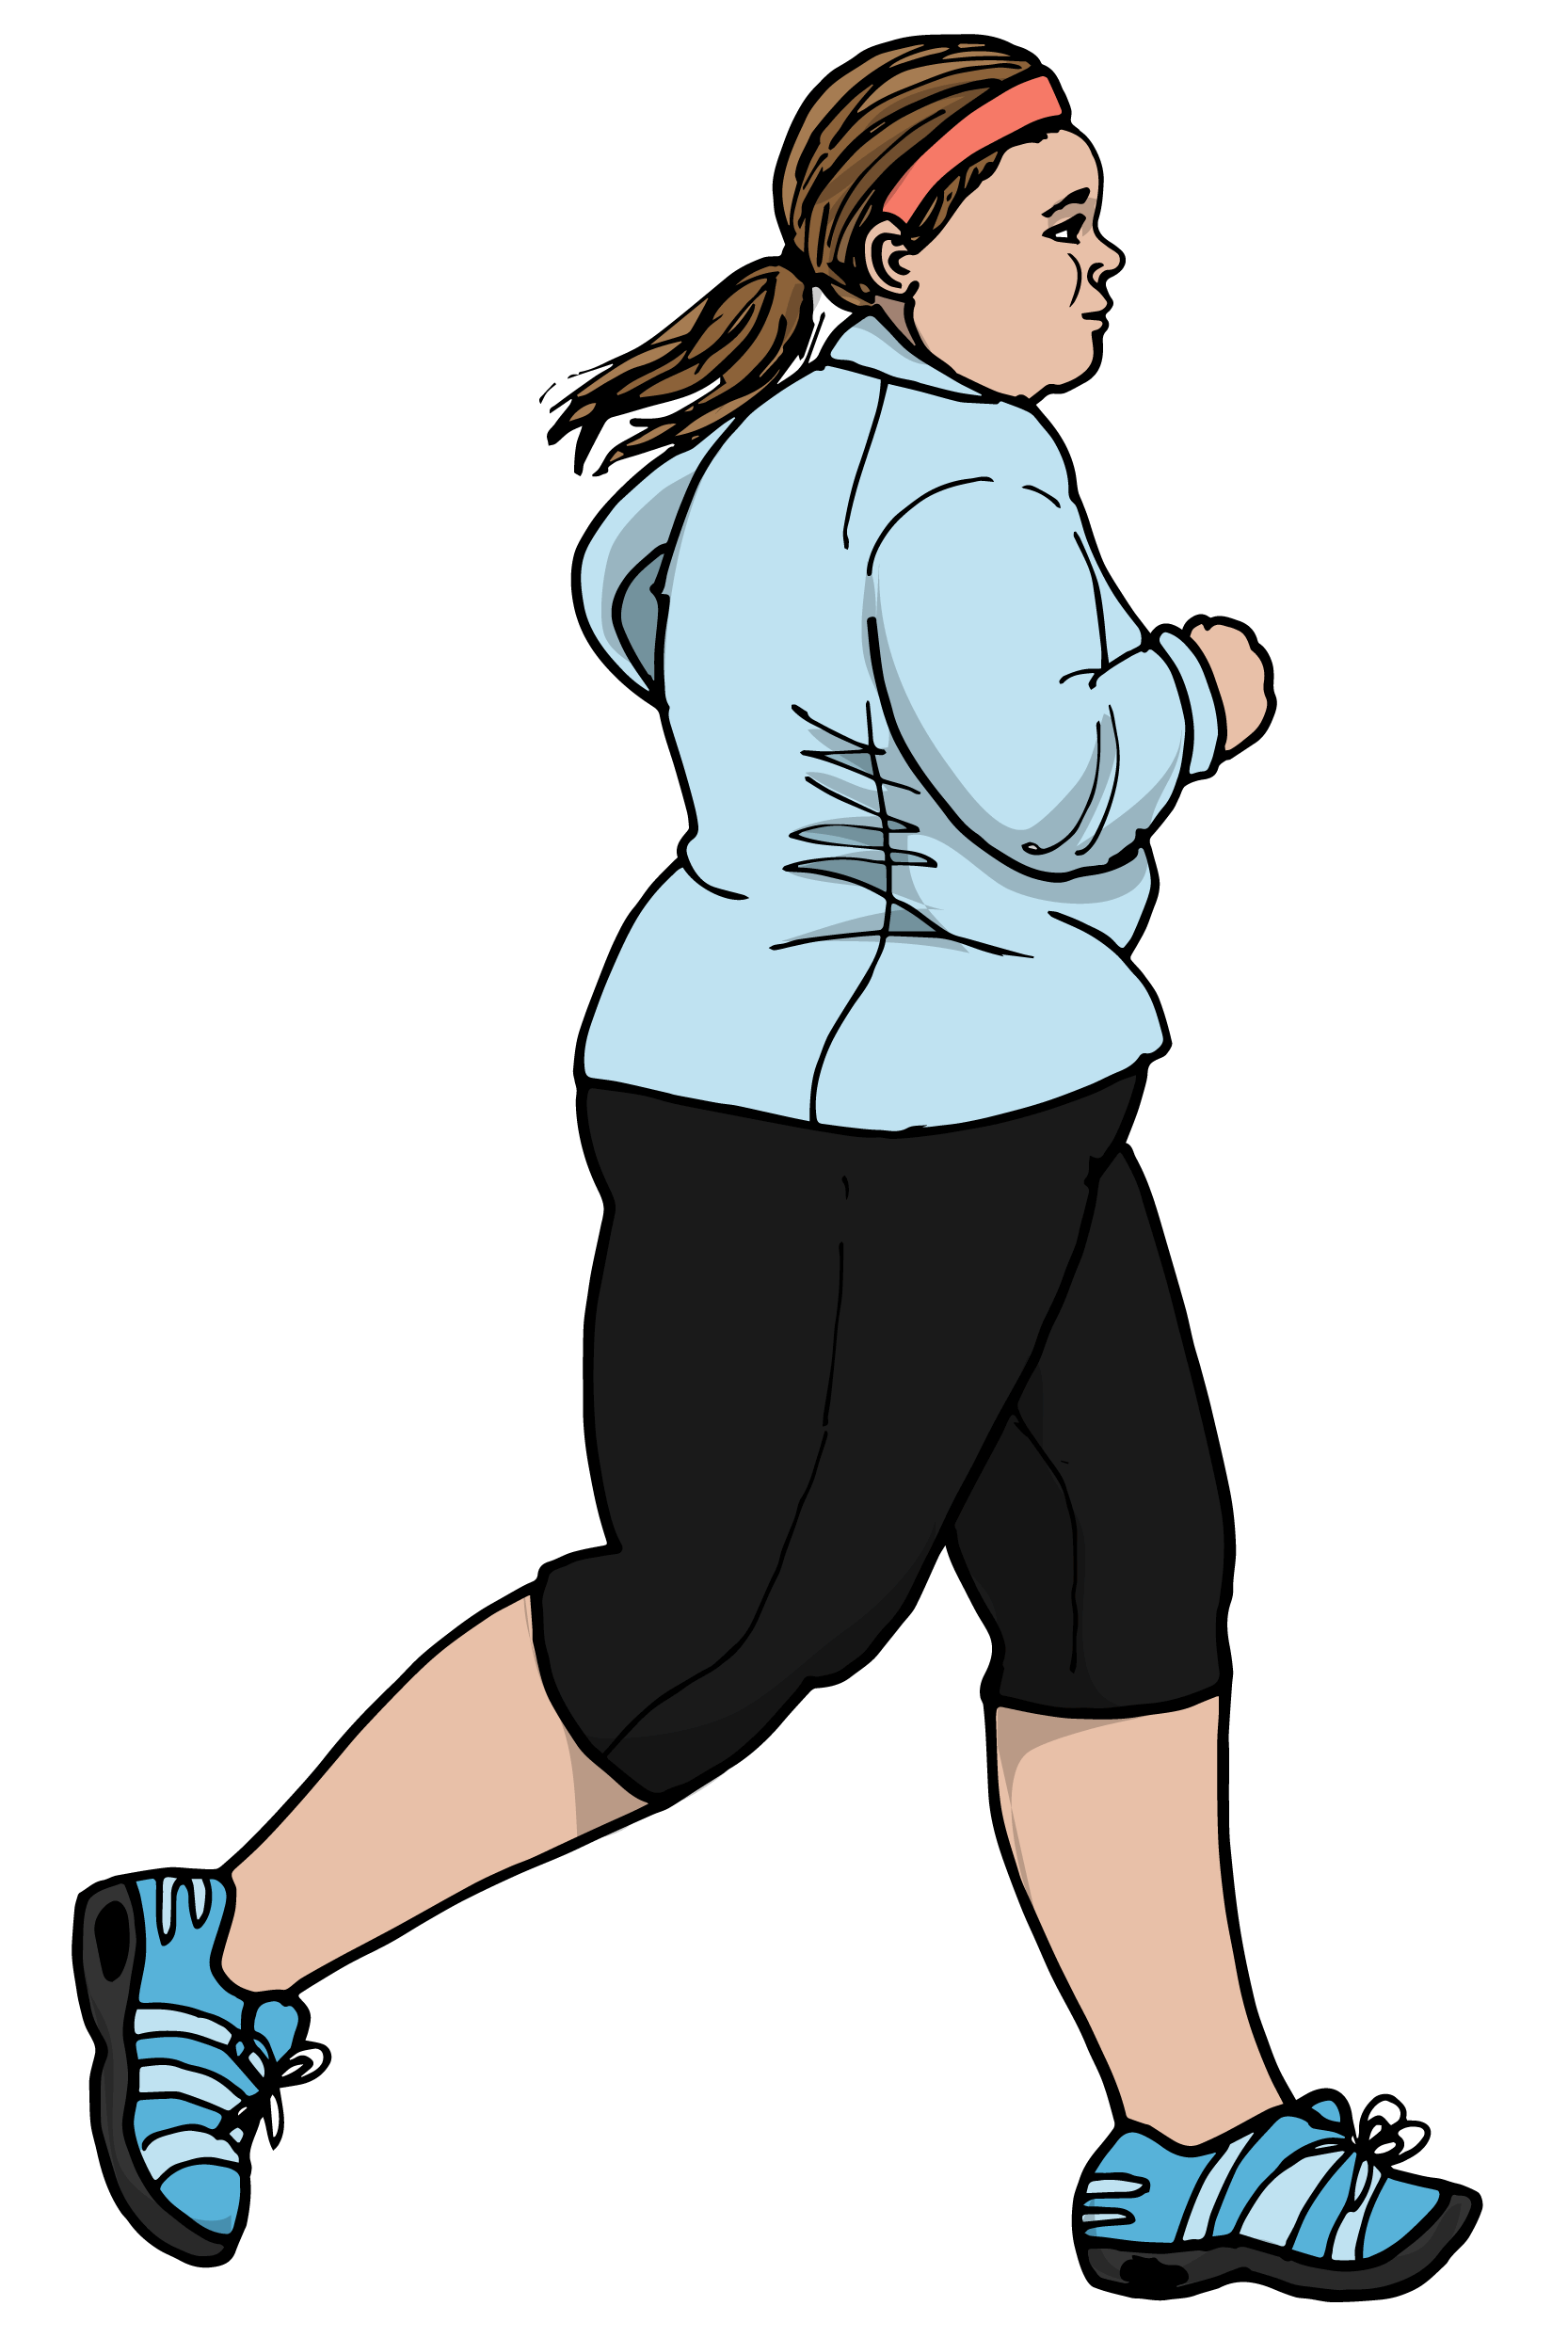 En person som joggar. Illustration.